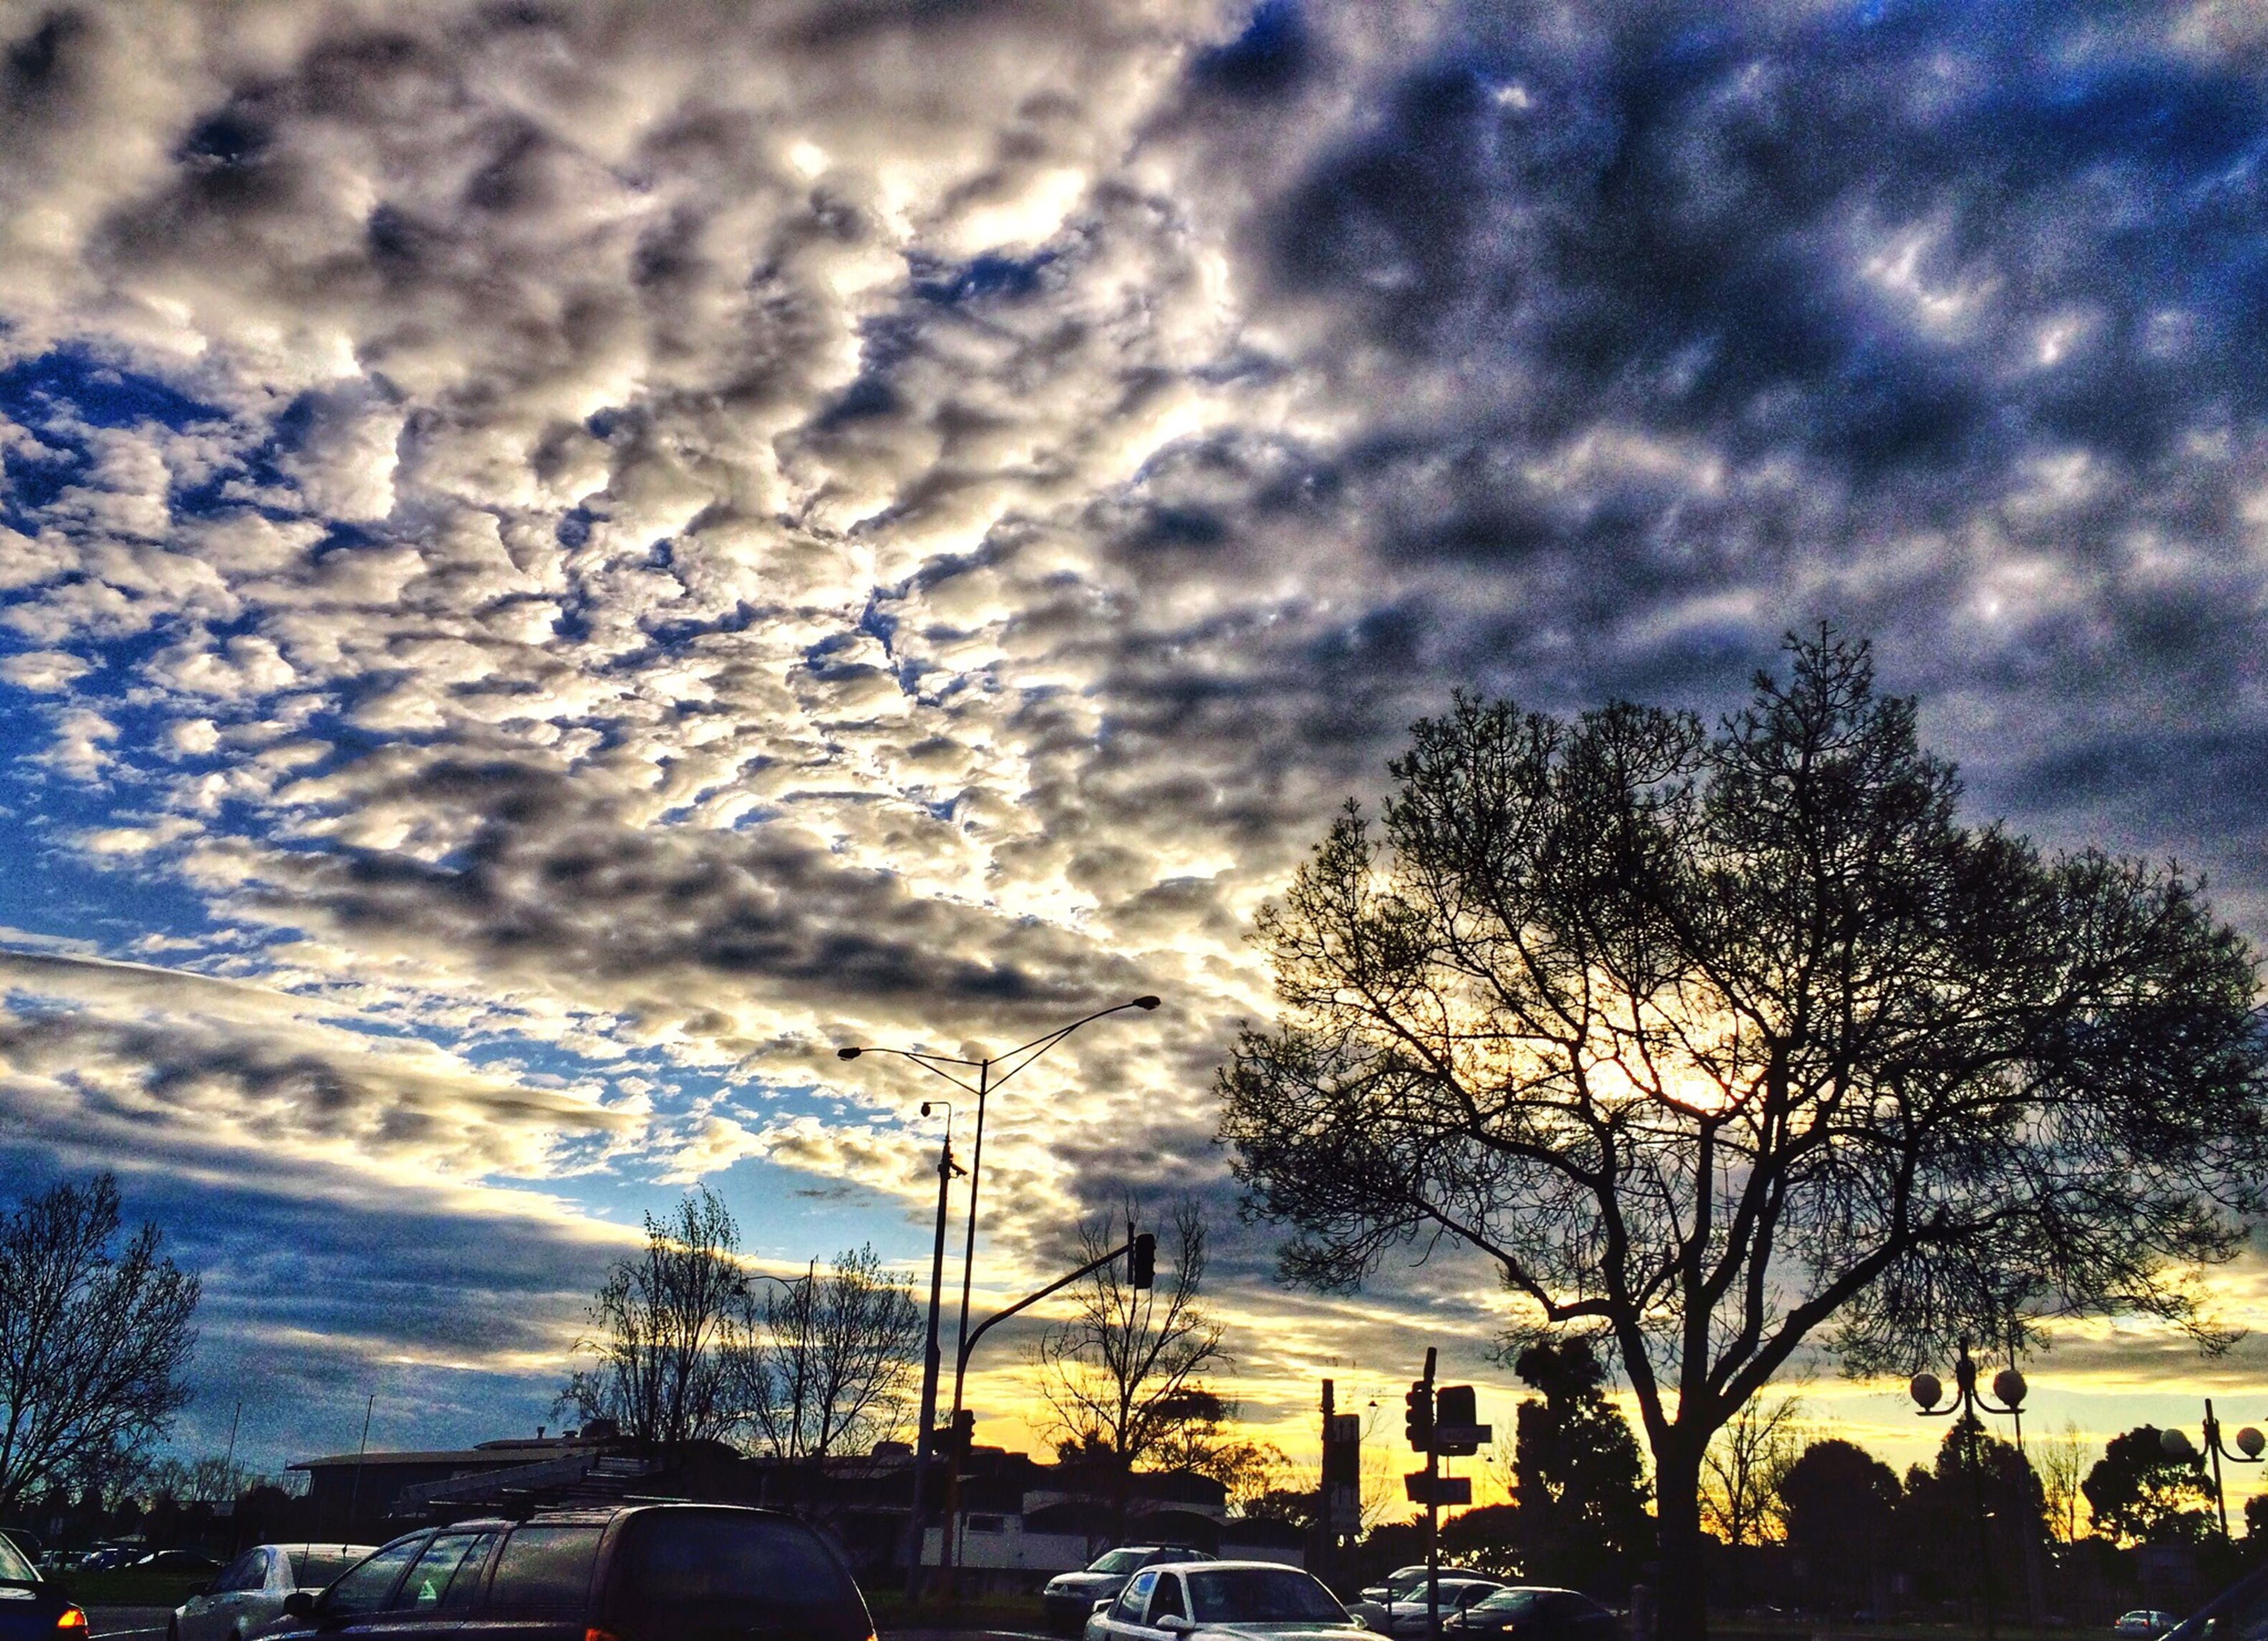 sky, cloud - sky, tree, transportation, car, cloudy, land vehicle, mode of transport, bare tree, weather, cloud, silhouette, nature, sunset, scenics, overcast, road, beauty in nature, tranquility, tranquil scene